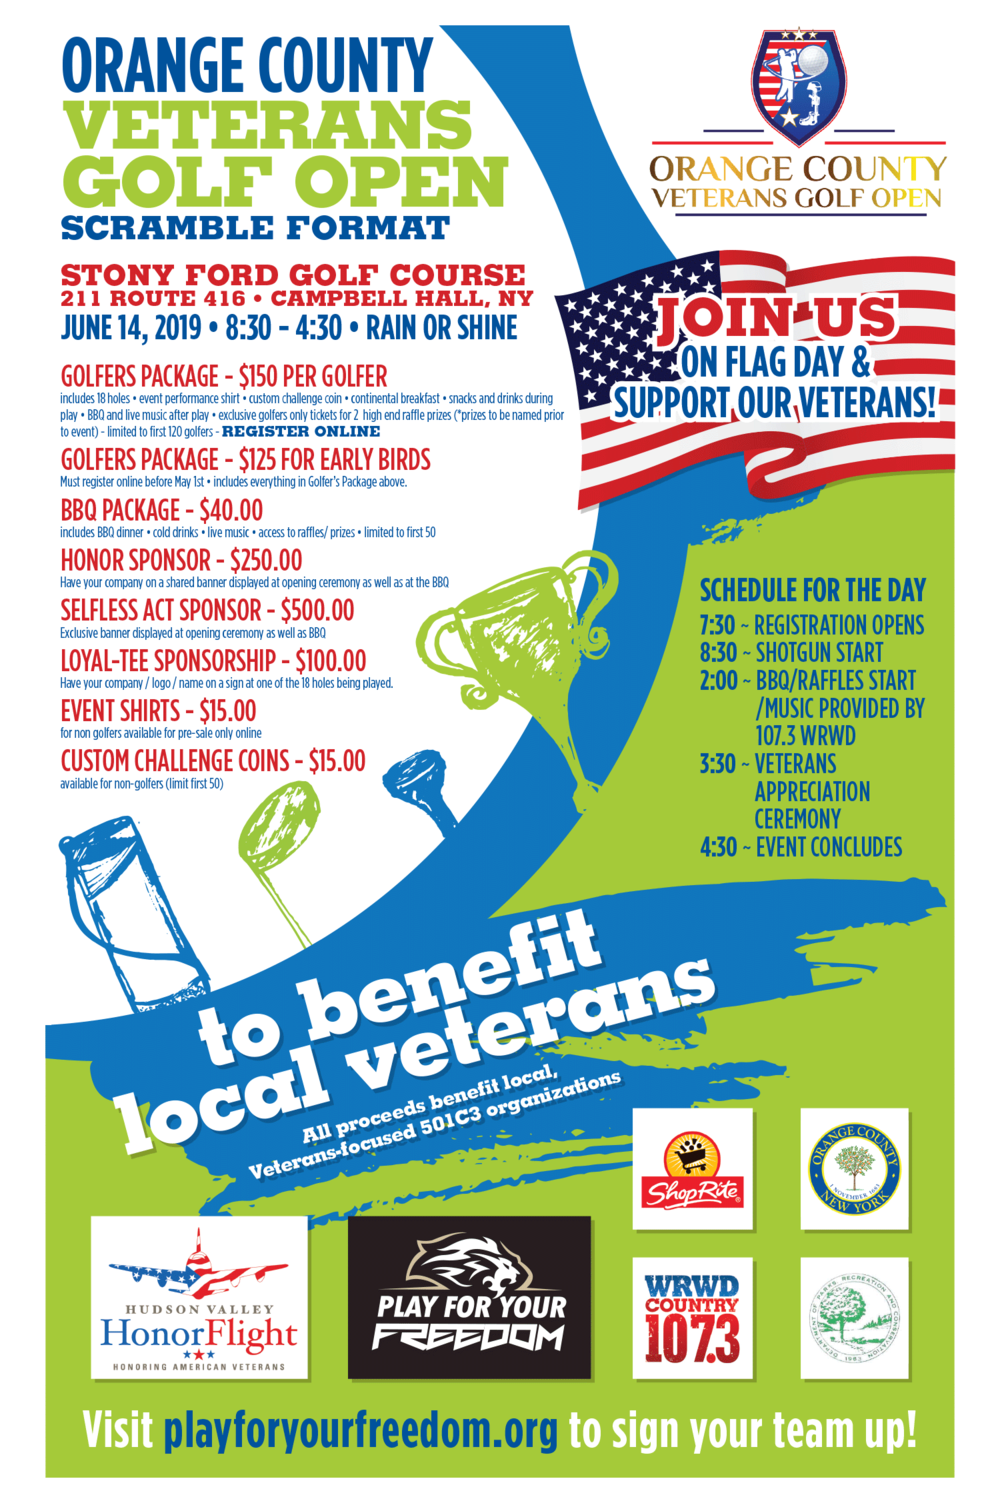 PFYF-Orange-Co-Vets-Golf-Open-Flyer-11x17-PC-3-19.png